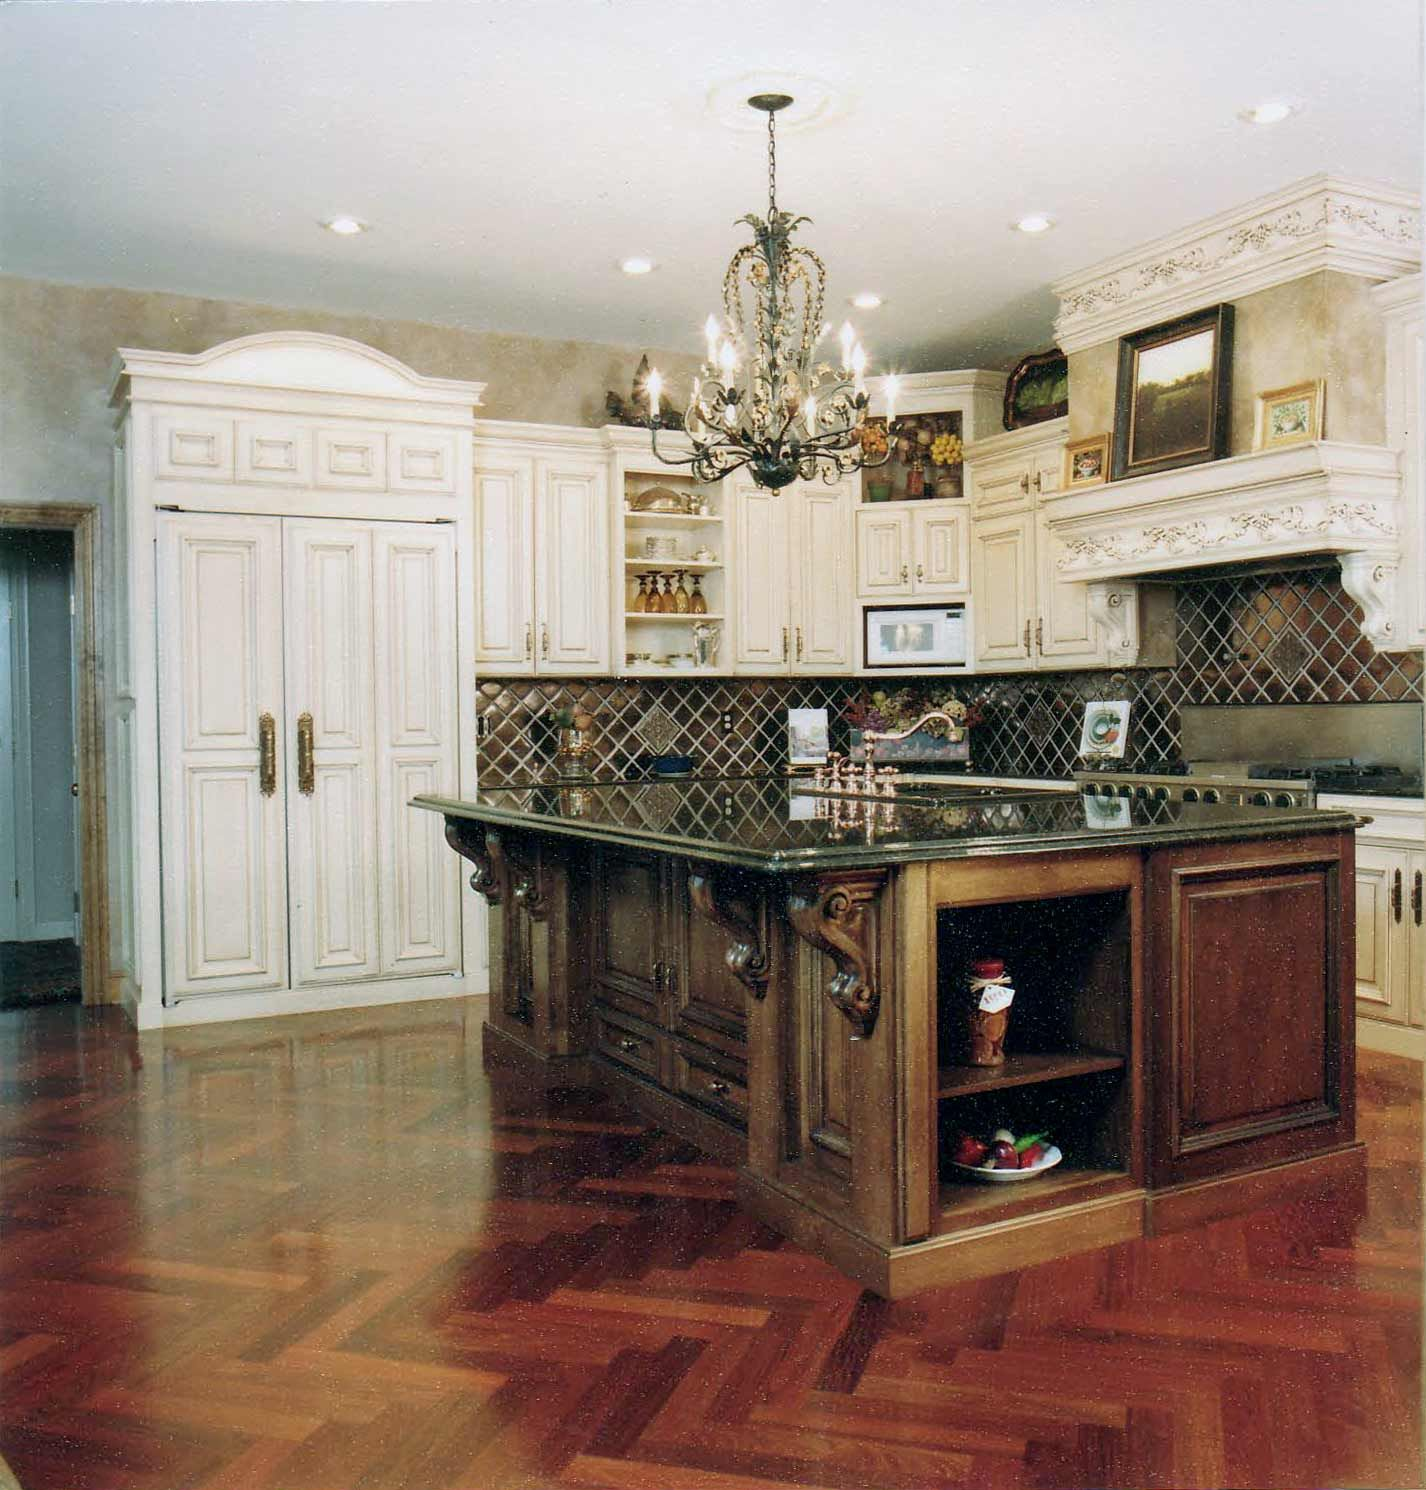 French Country Kitchen Décor  Kitchen Hardware Cabinet Design Delectable French Kitchen Design Design Inspiration